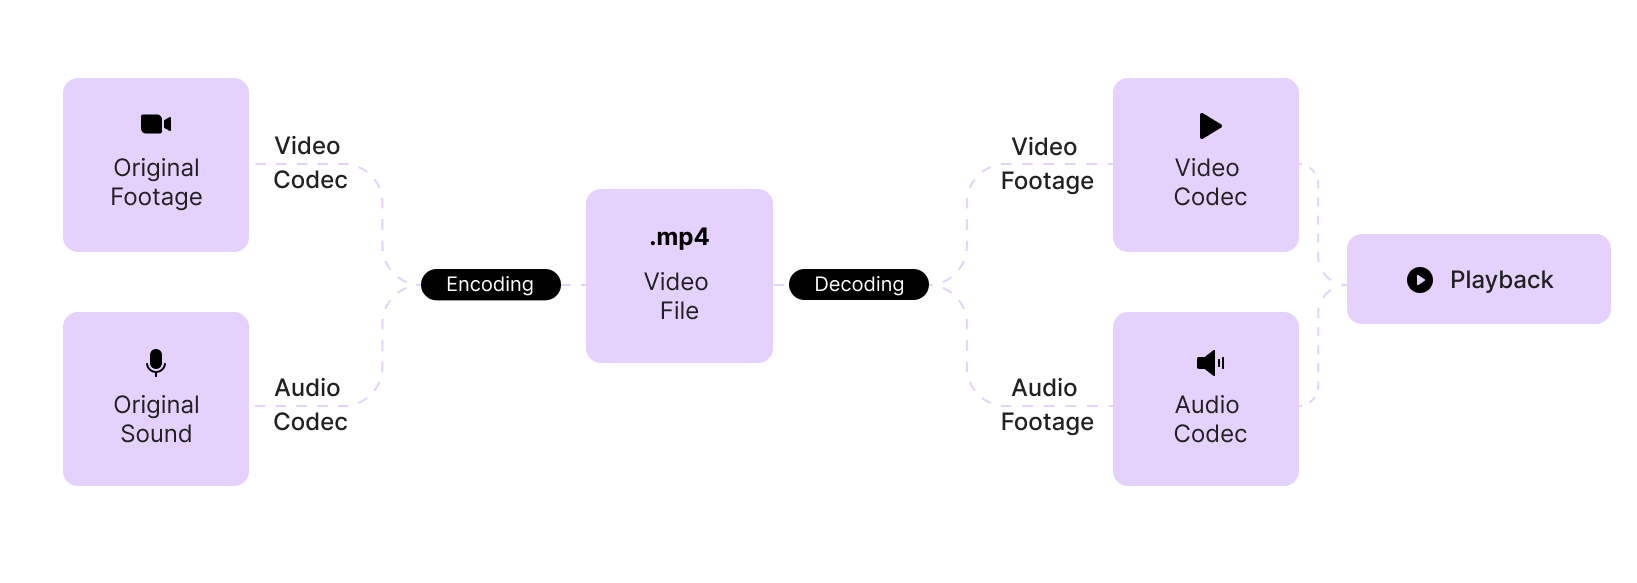 A schematic representation of a video encoding and decoding process for different types of video files